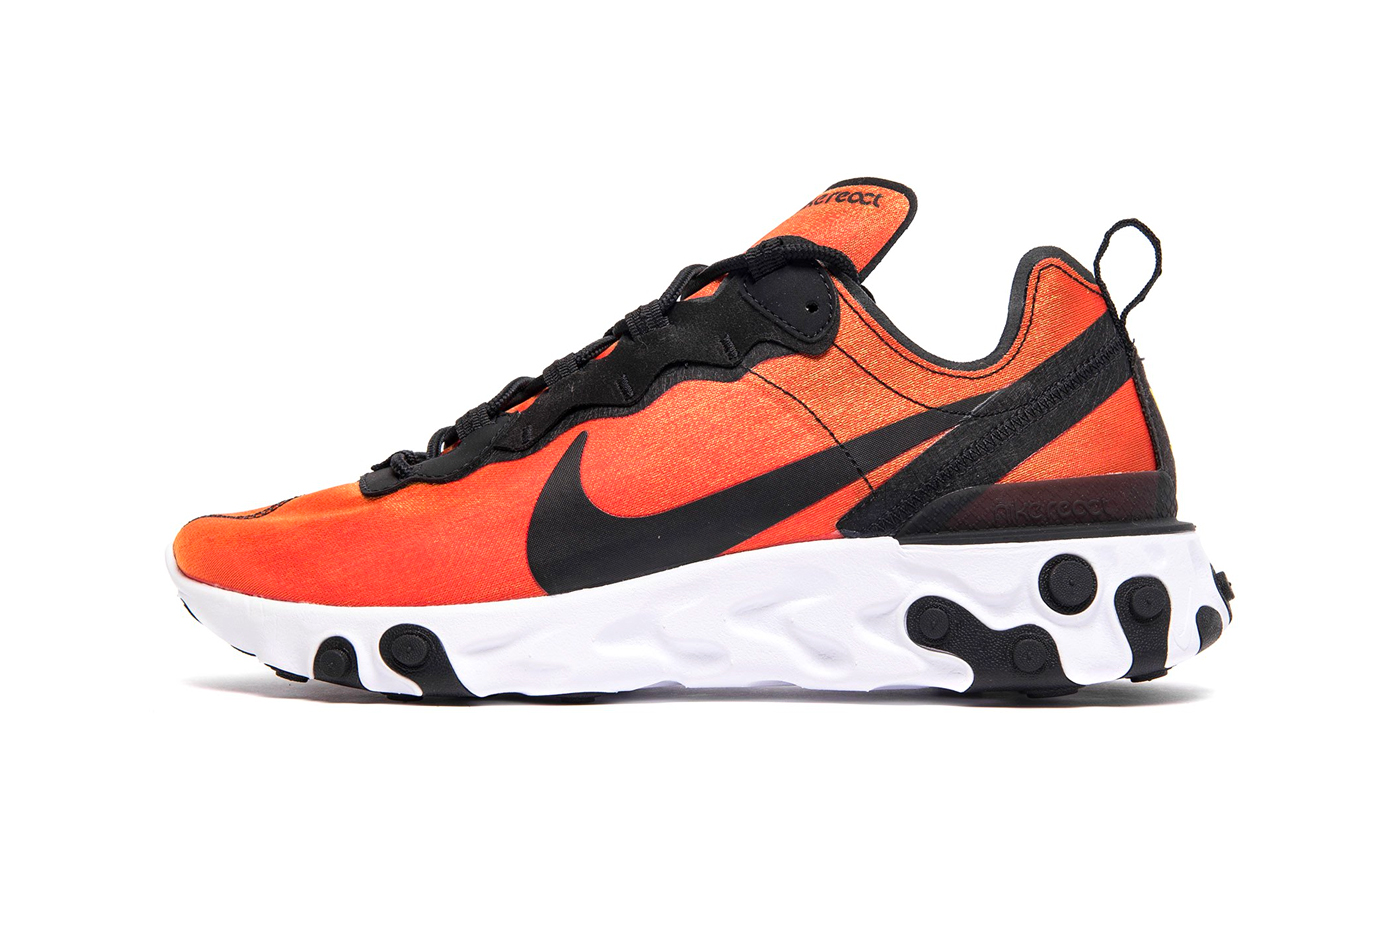 6bc8ad233bb8 Nike React Element 55